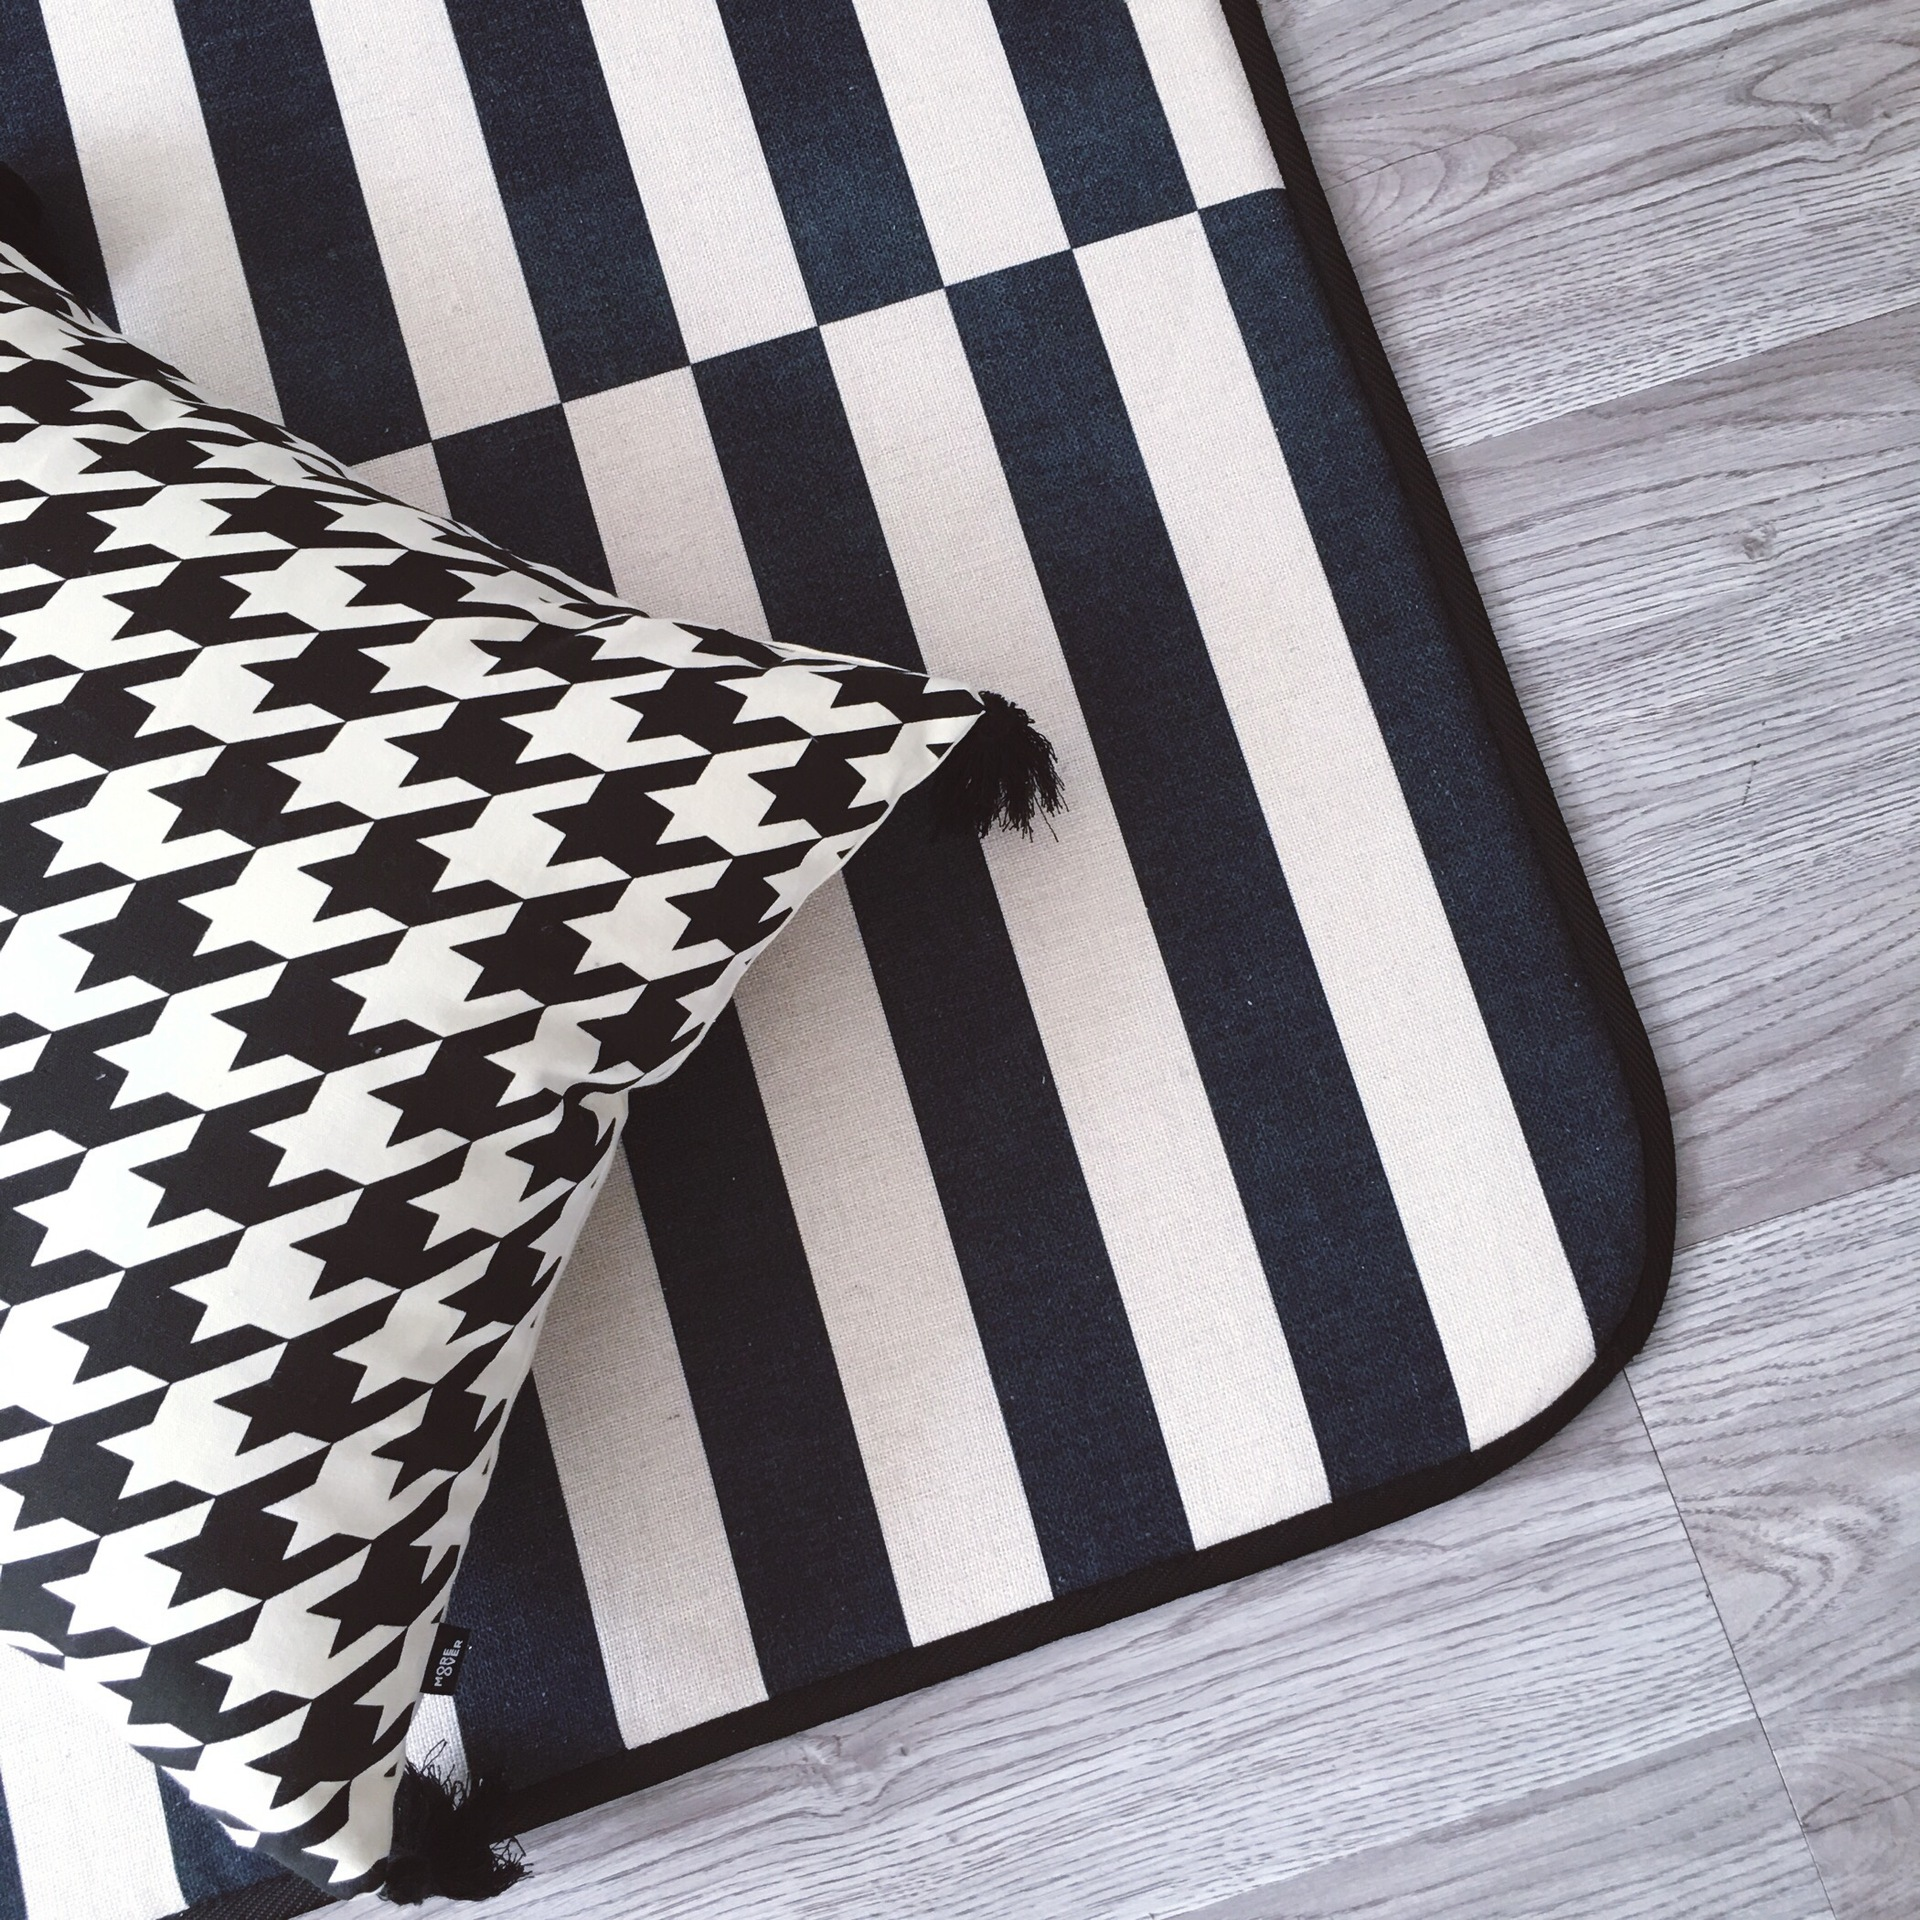 Us 98 4 20 Off 145x195cm Black White Rugs And Carpets For Living Room Home Bedroom Area Rug Coffee Table Floor Mat Kids Play Carpet Striped In